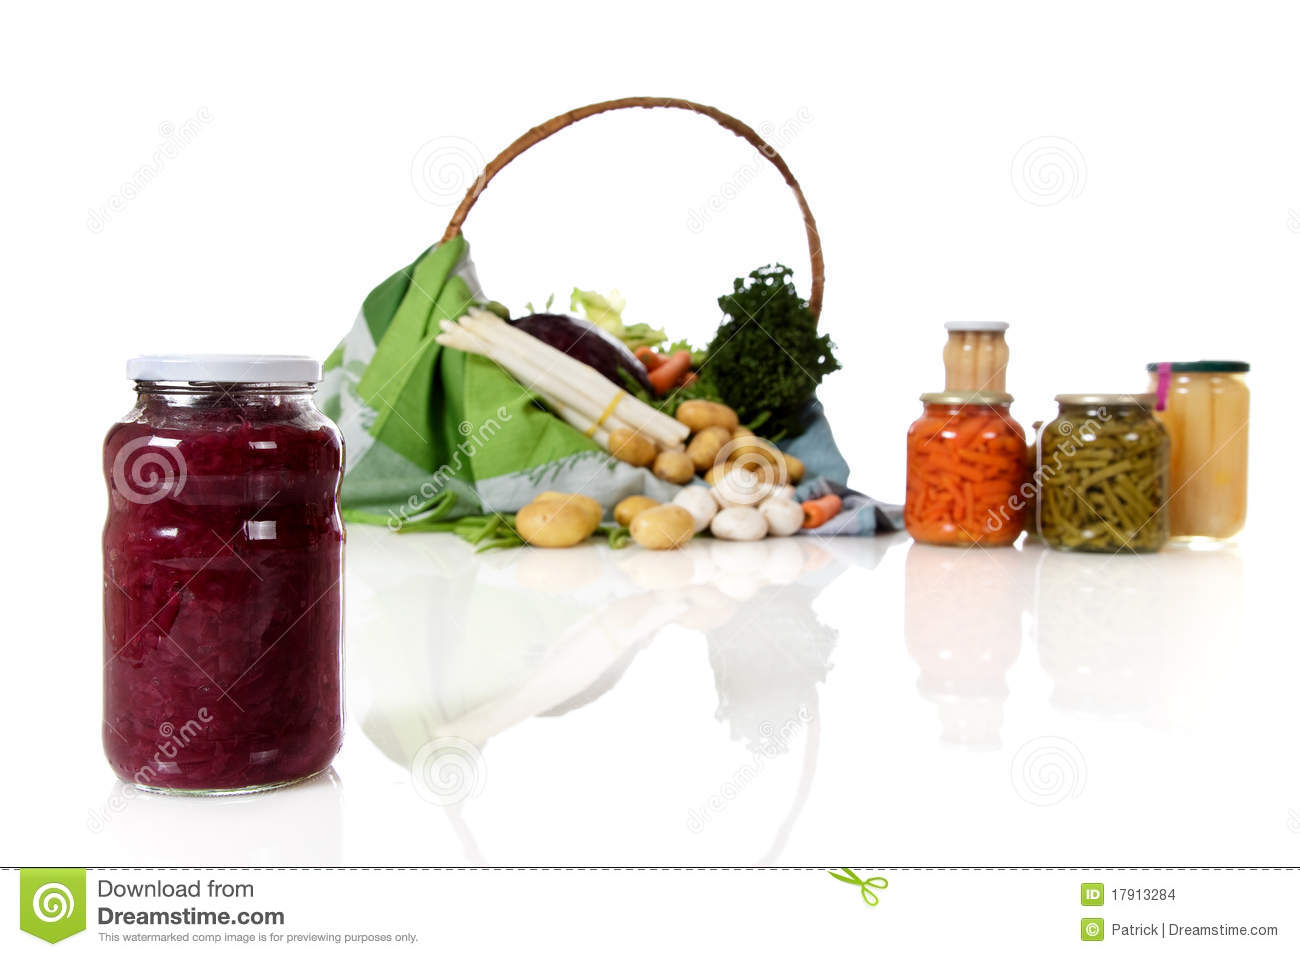 how to cook red cabbage in a jar